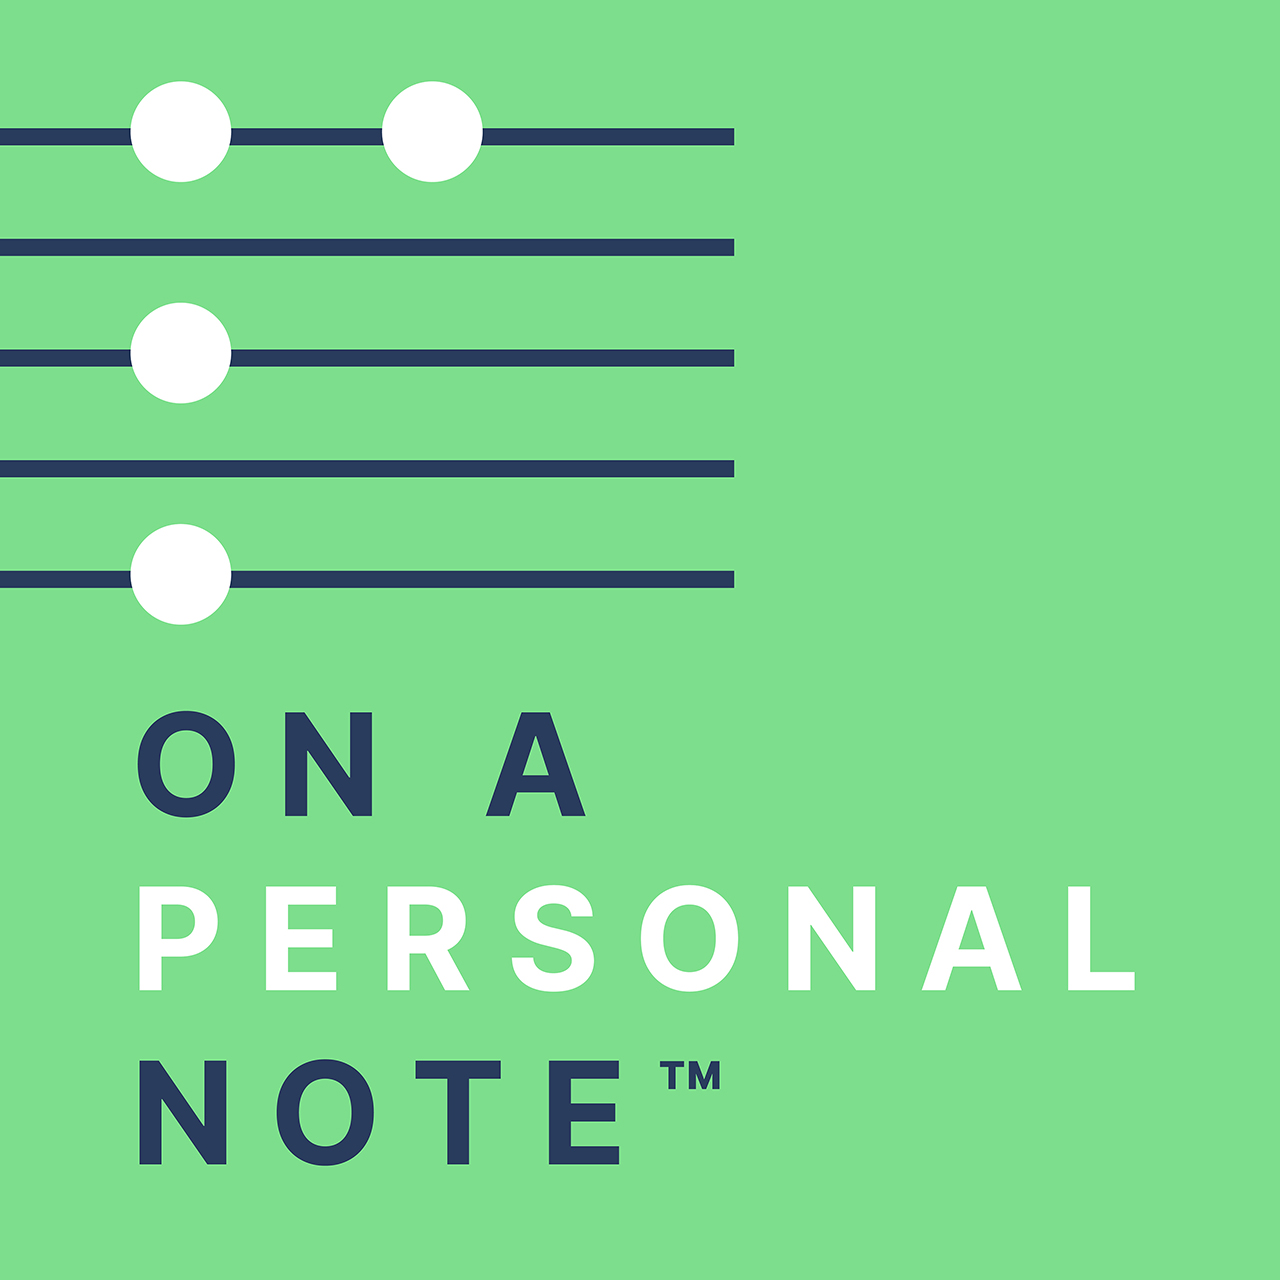 Franz Welser-Möst and the Podcast On a Personal Note